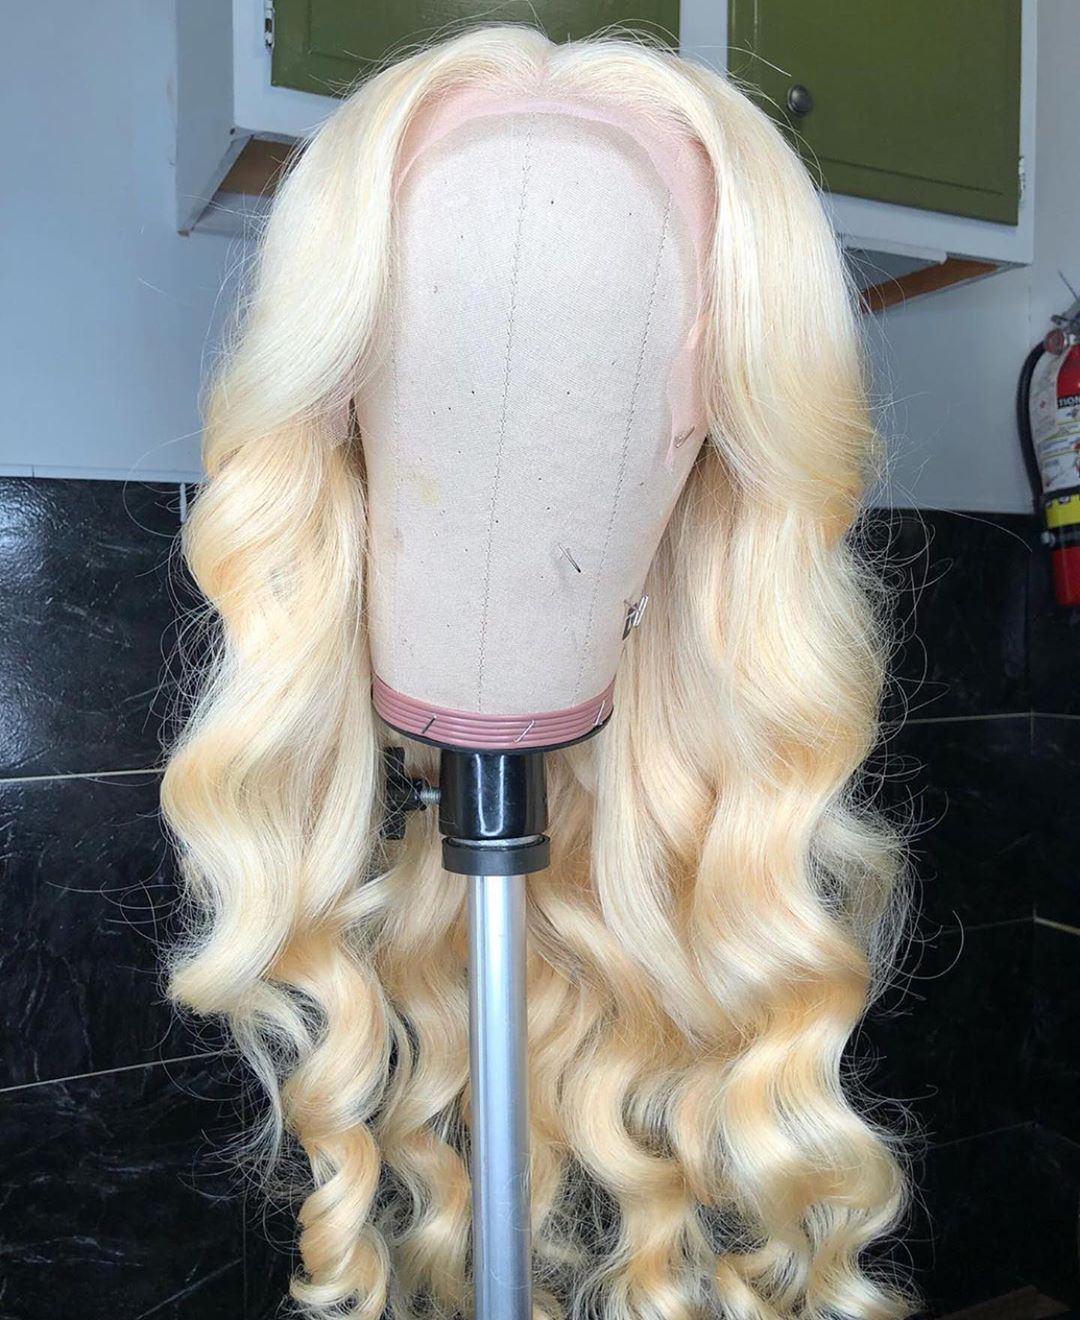 Middle Part Body Wave 13*1 Lace Front Wigs 28 inch   613 Blonde Deep Part Wig Pre Plucked With Baby Hair 5